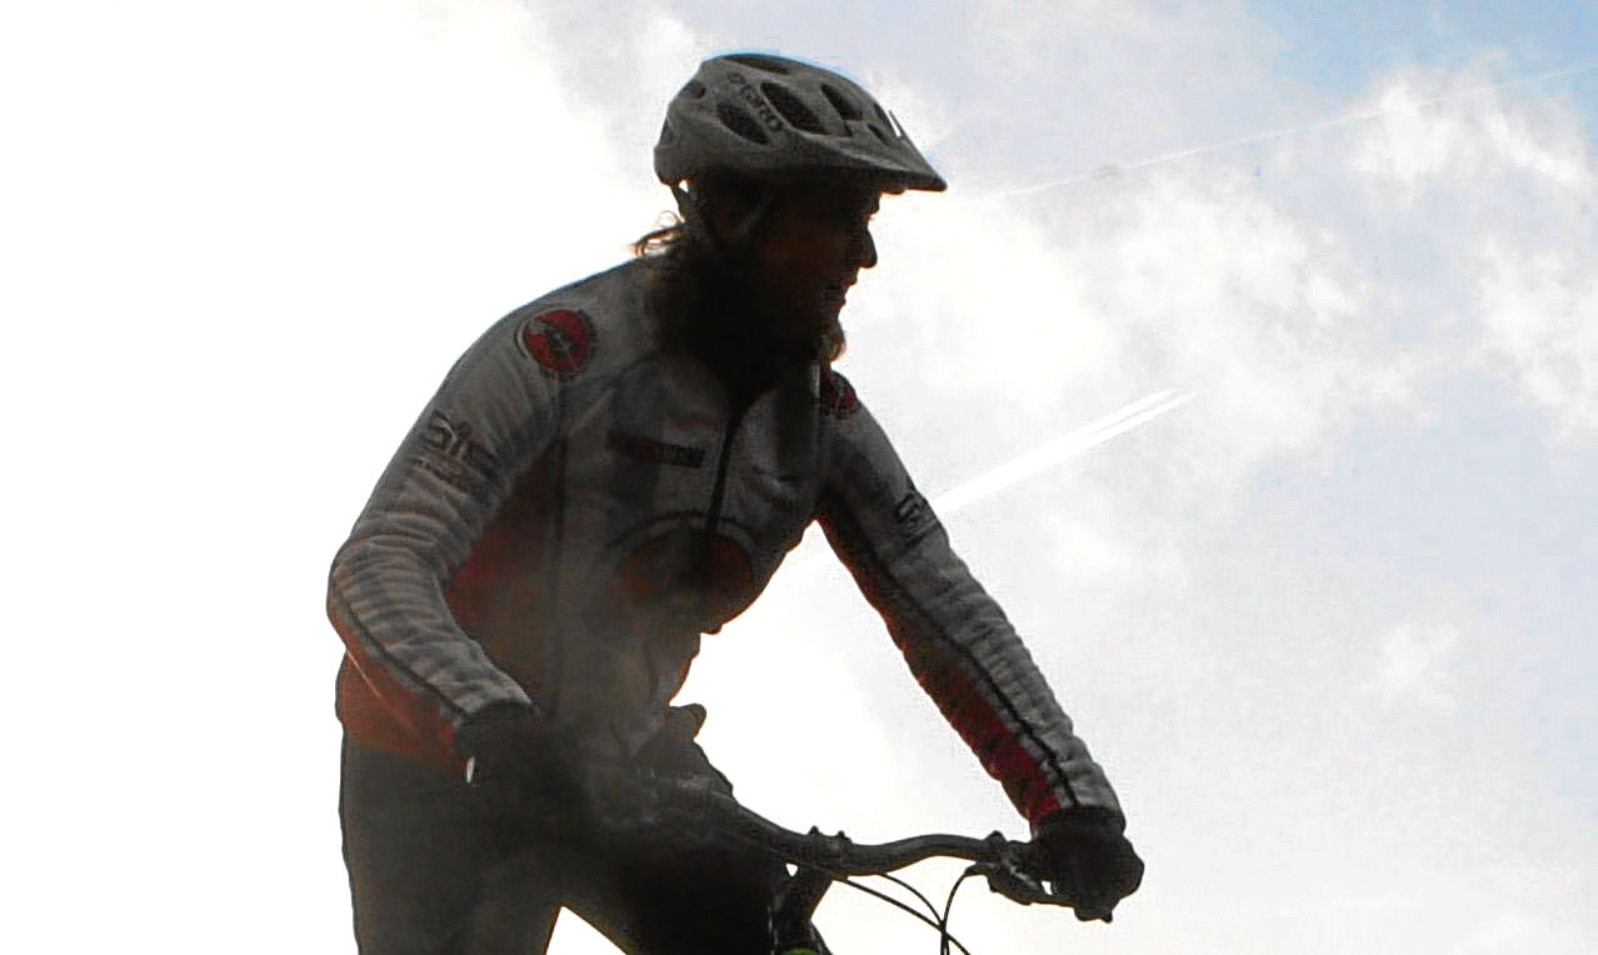 Mountain bikers have been asked to ride with consideration